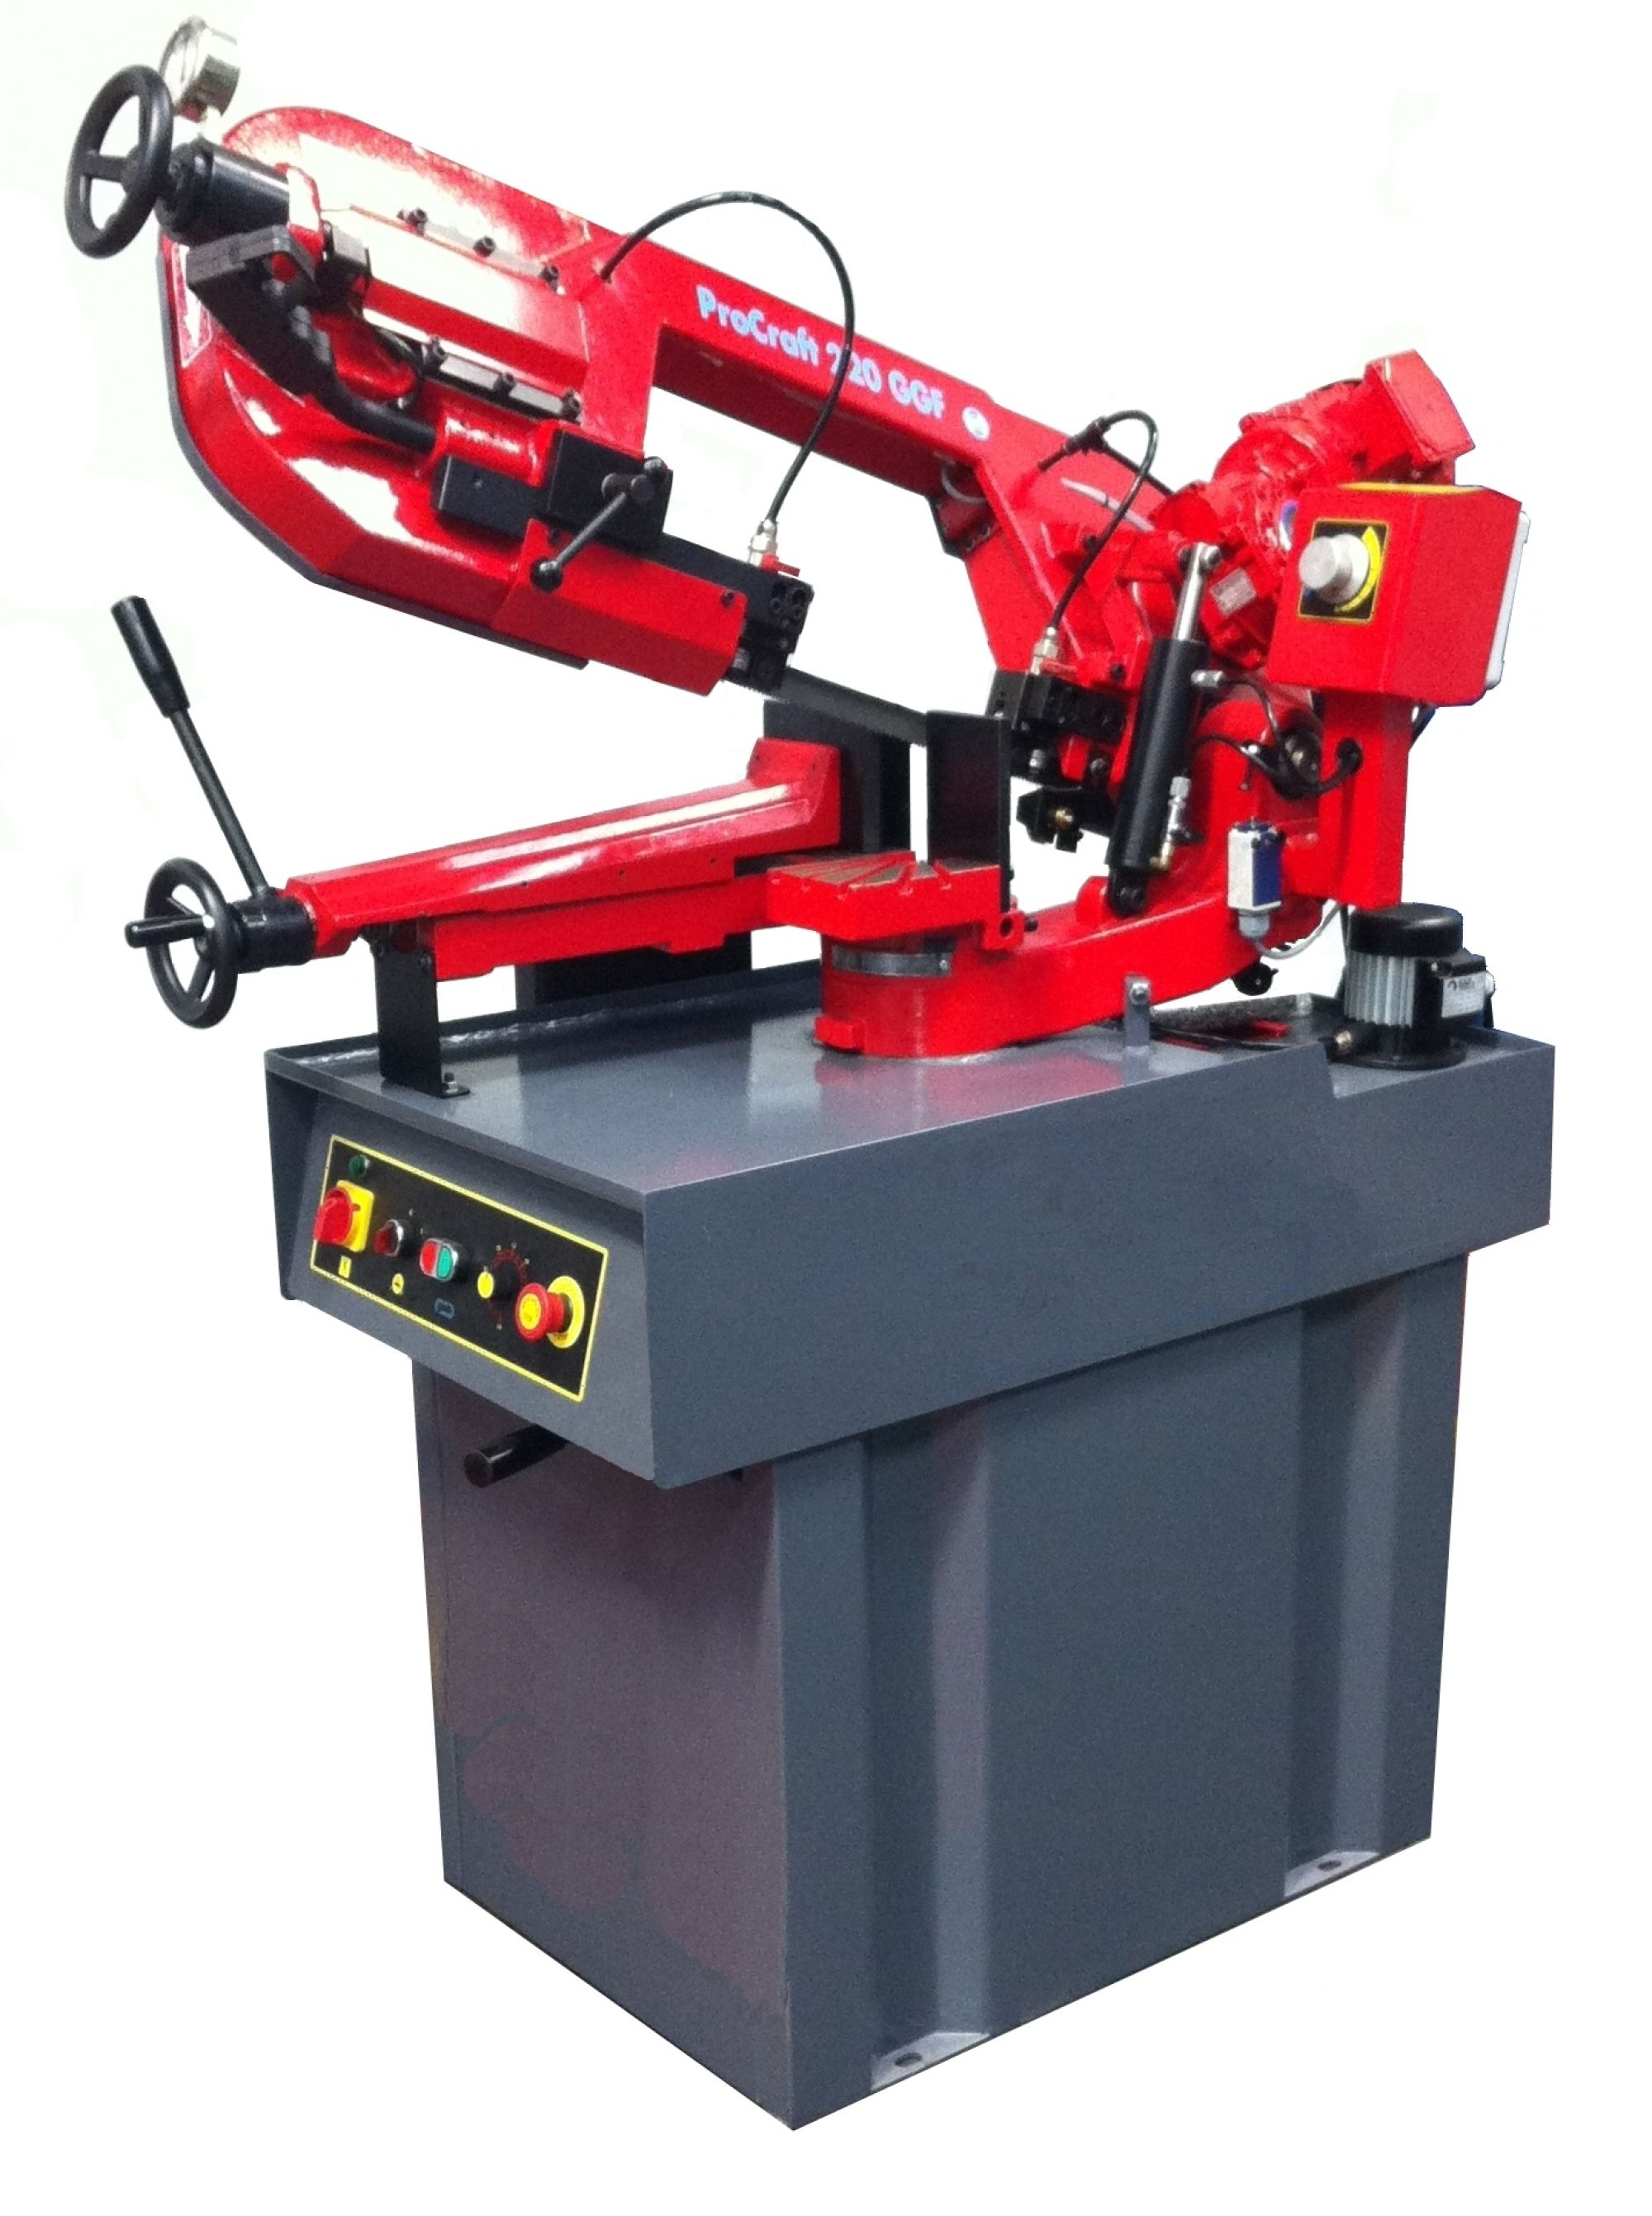 SD-220 Craft Dual Mode Bandsaw